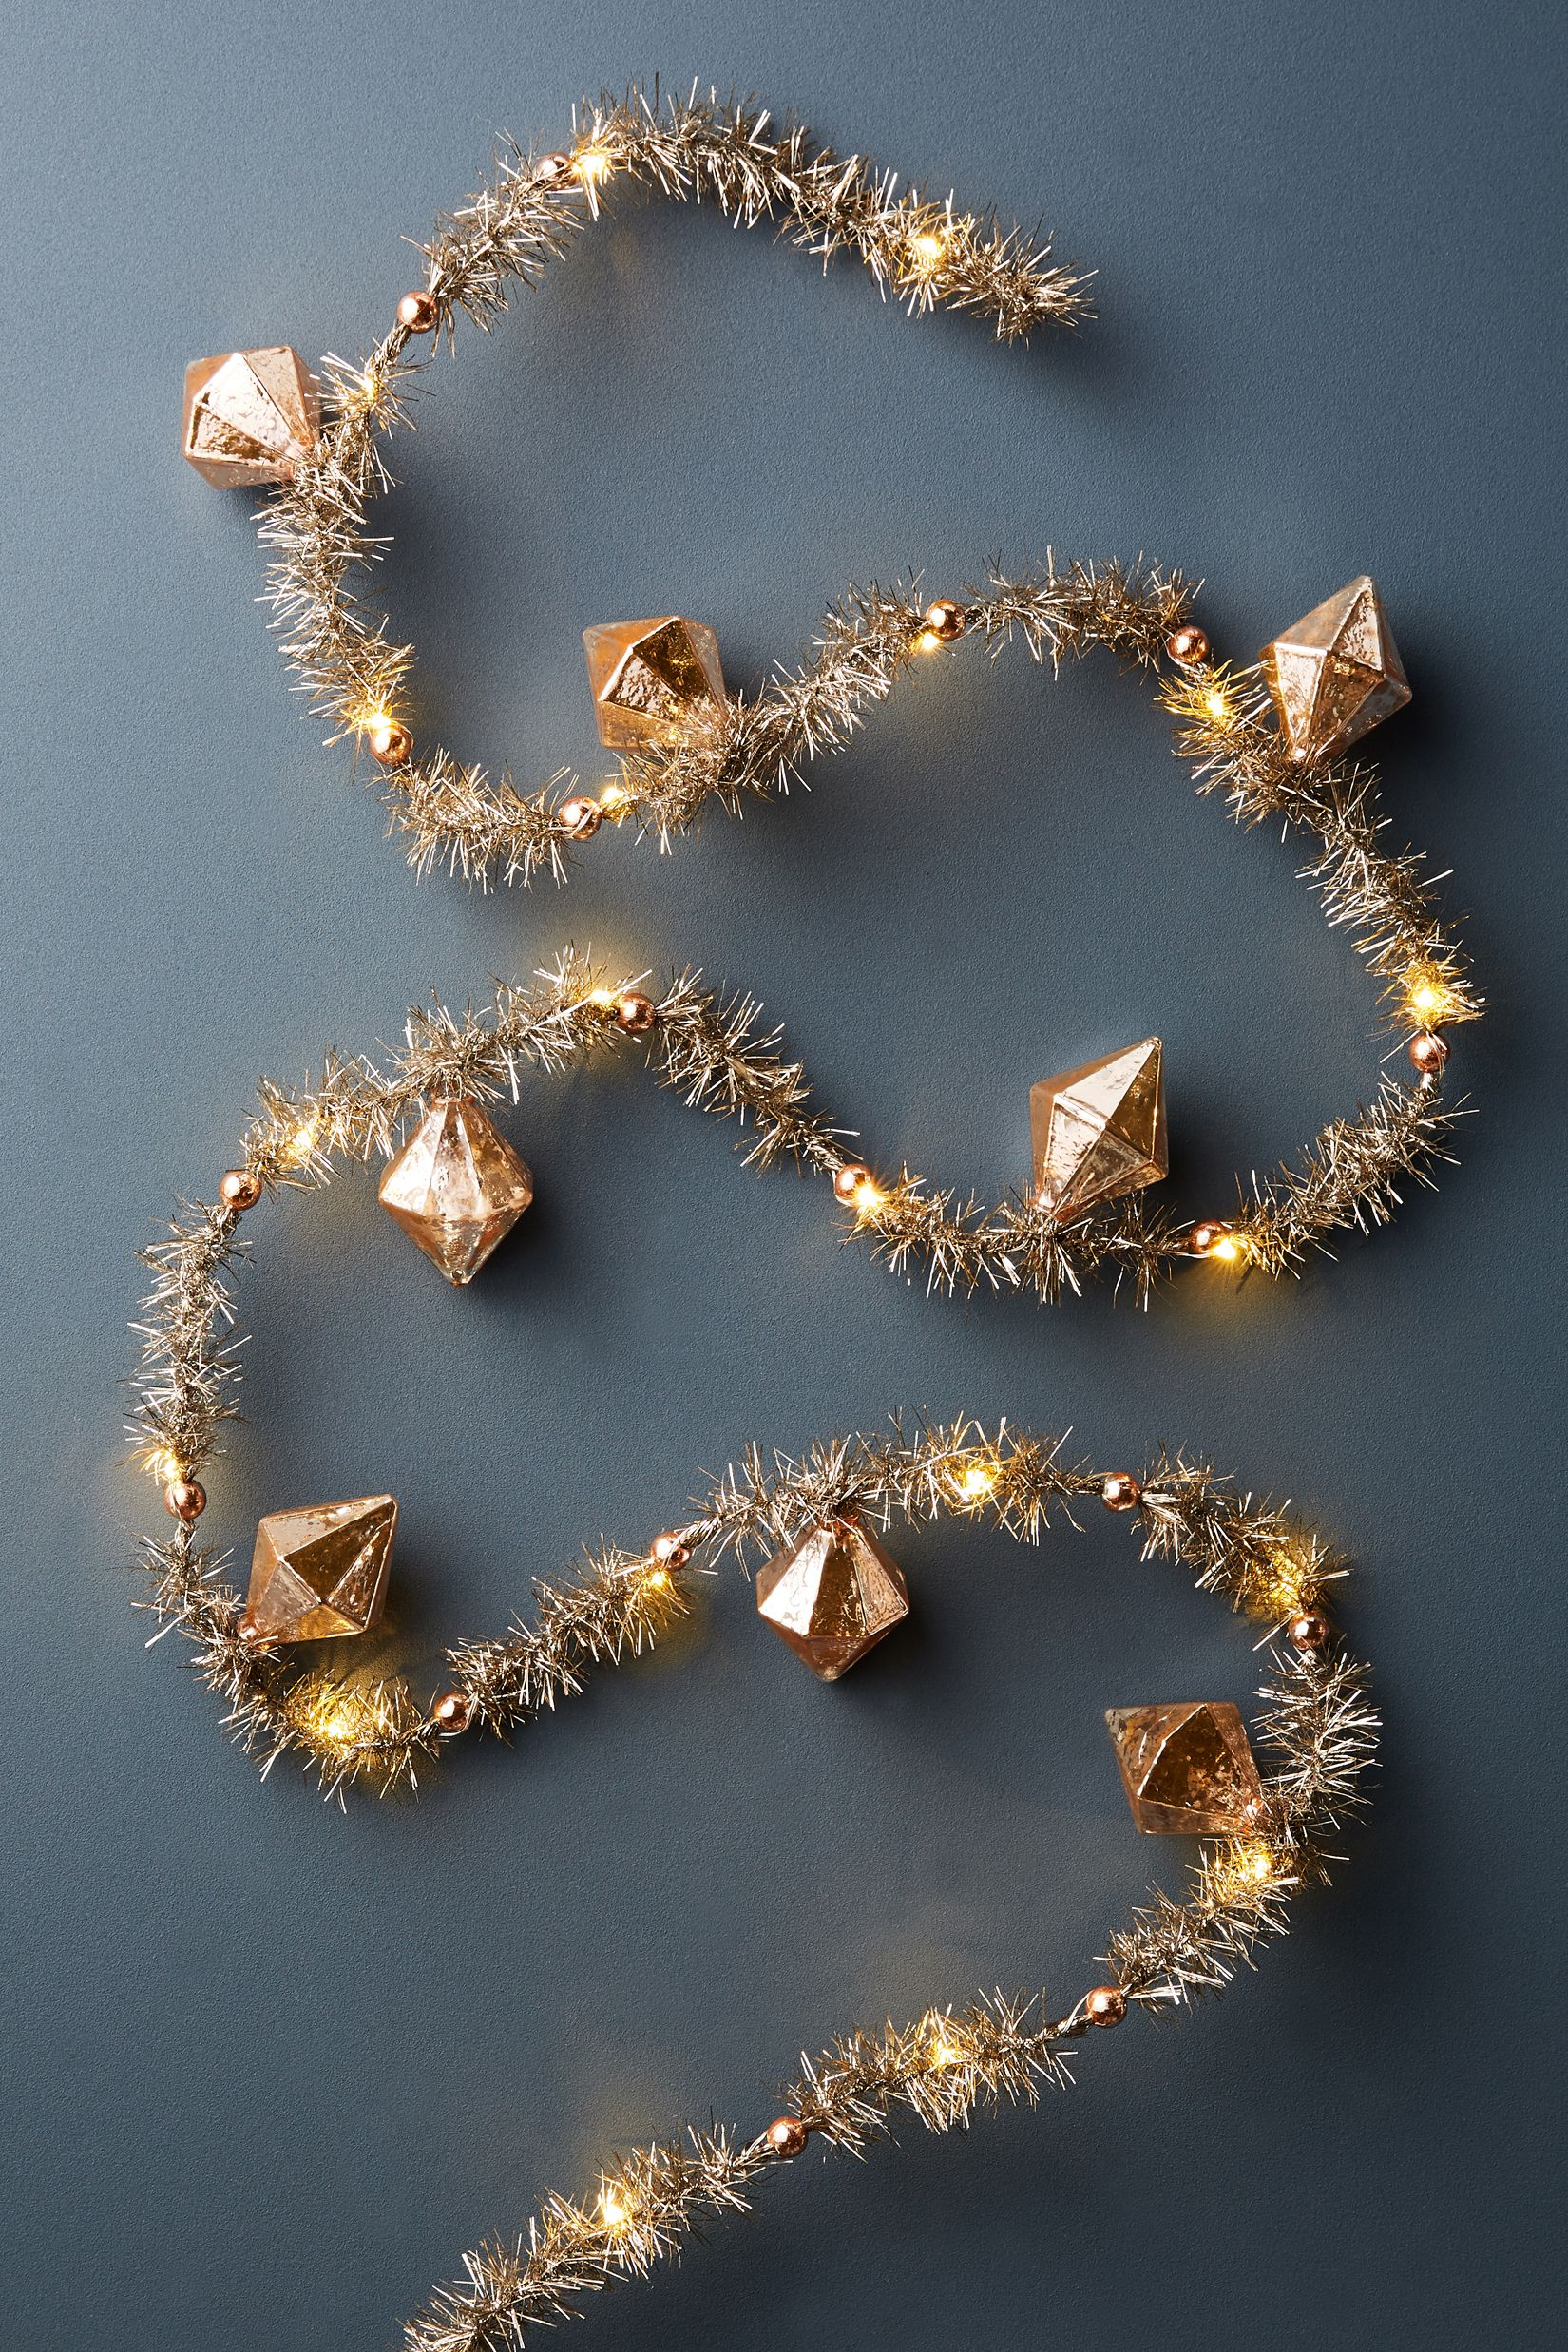 rose gold christmas decoration ideas holiday home decor - Gold Christmas